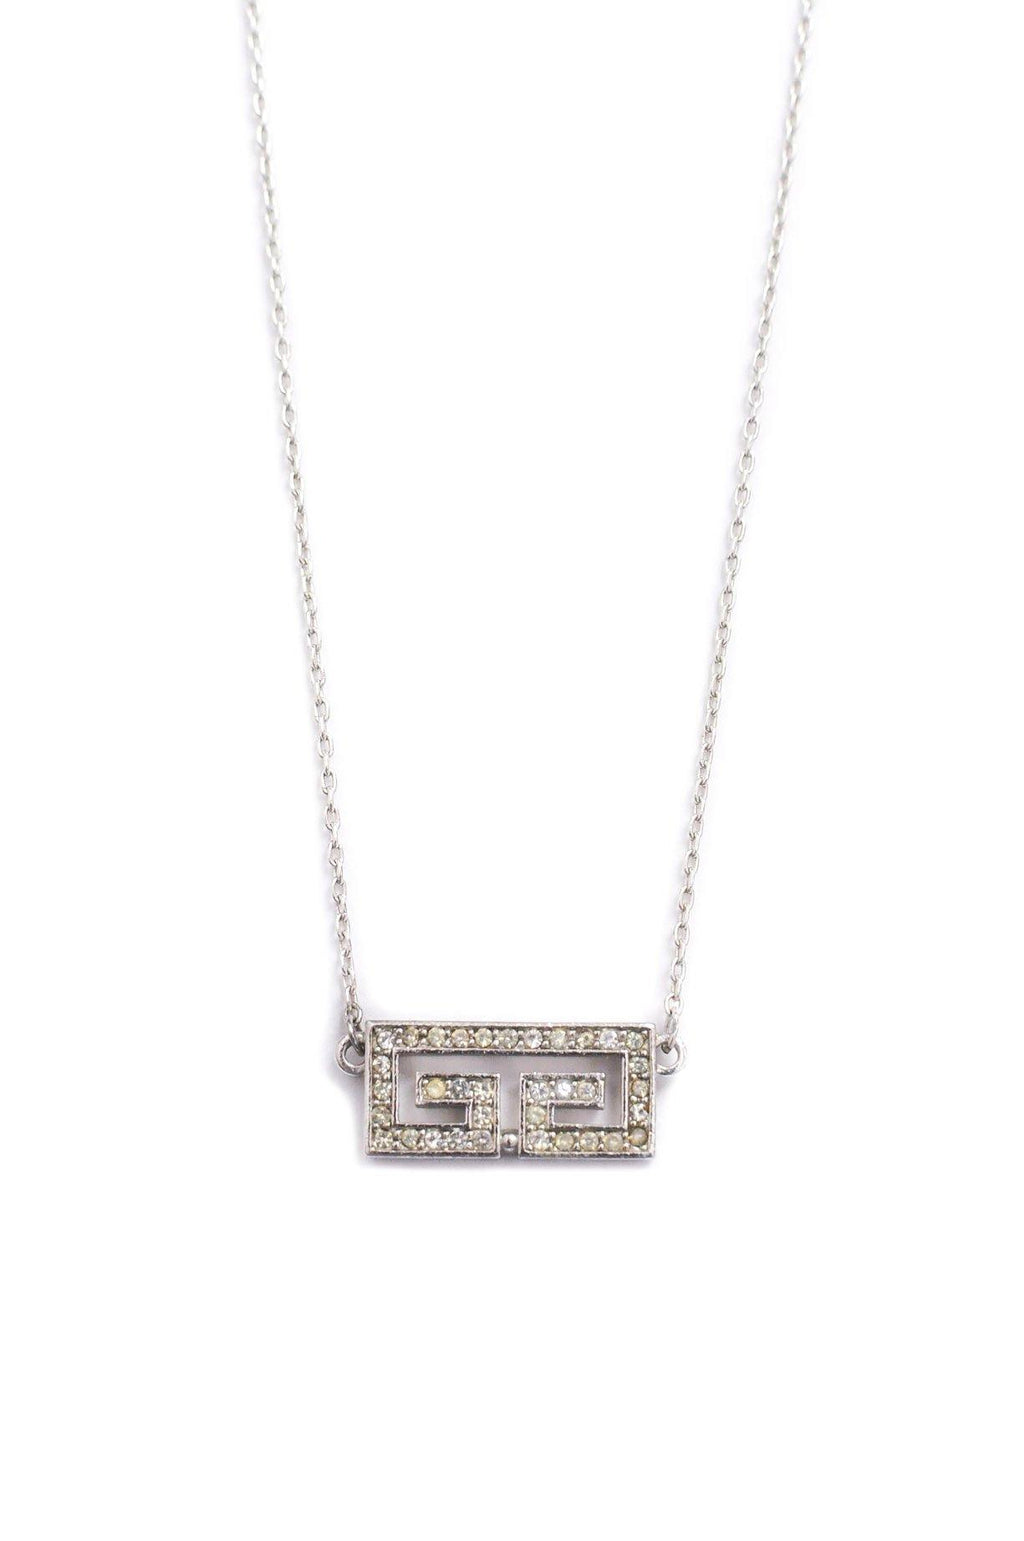 Givenchy Rhinestone Pendant Necklace